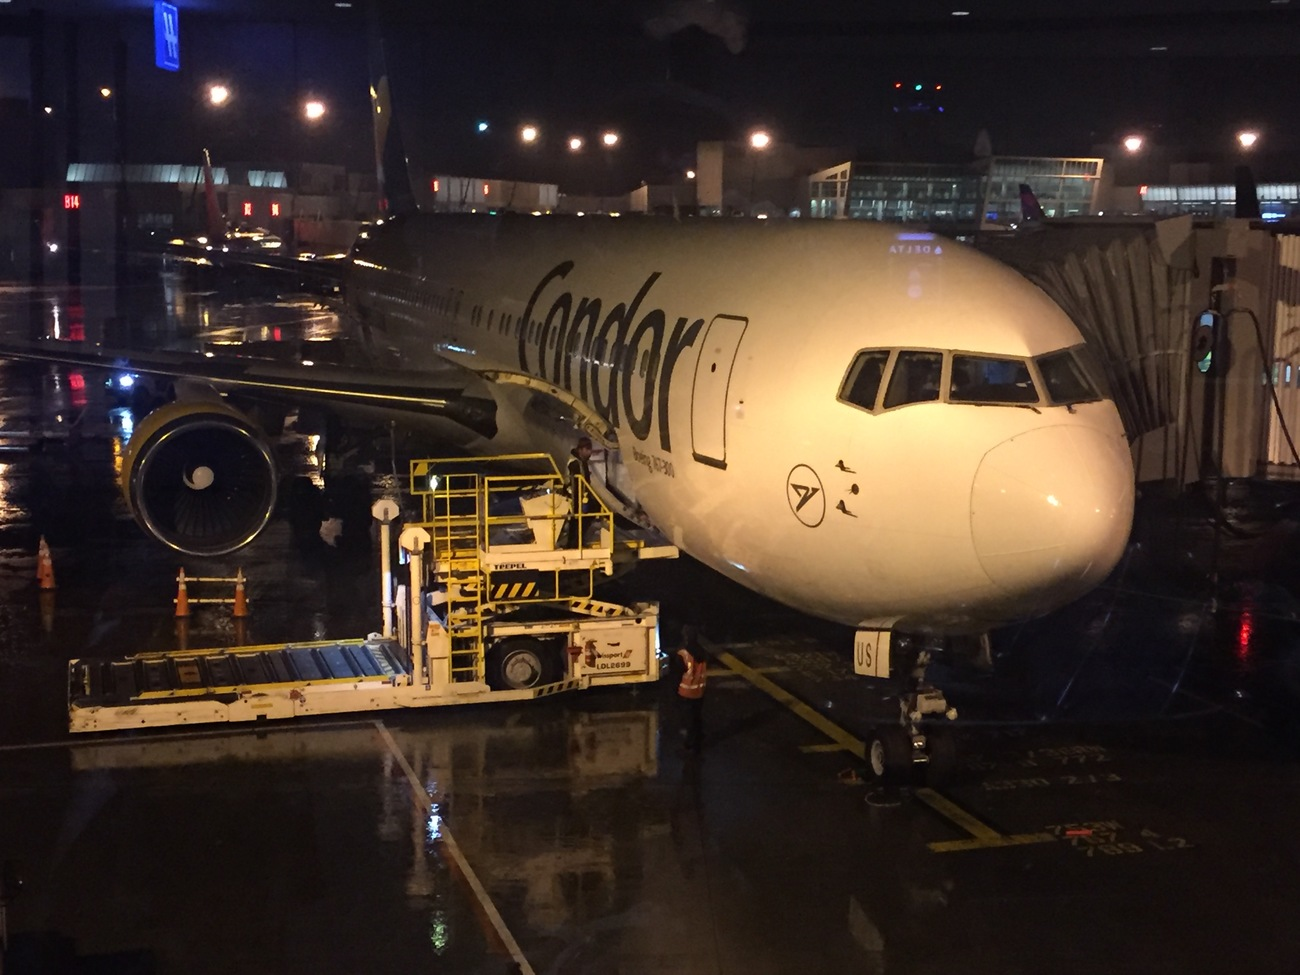 Seattle to Frankfurt a. M. by junge1